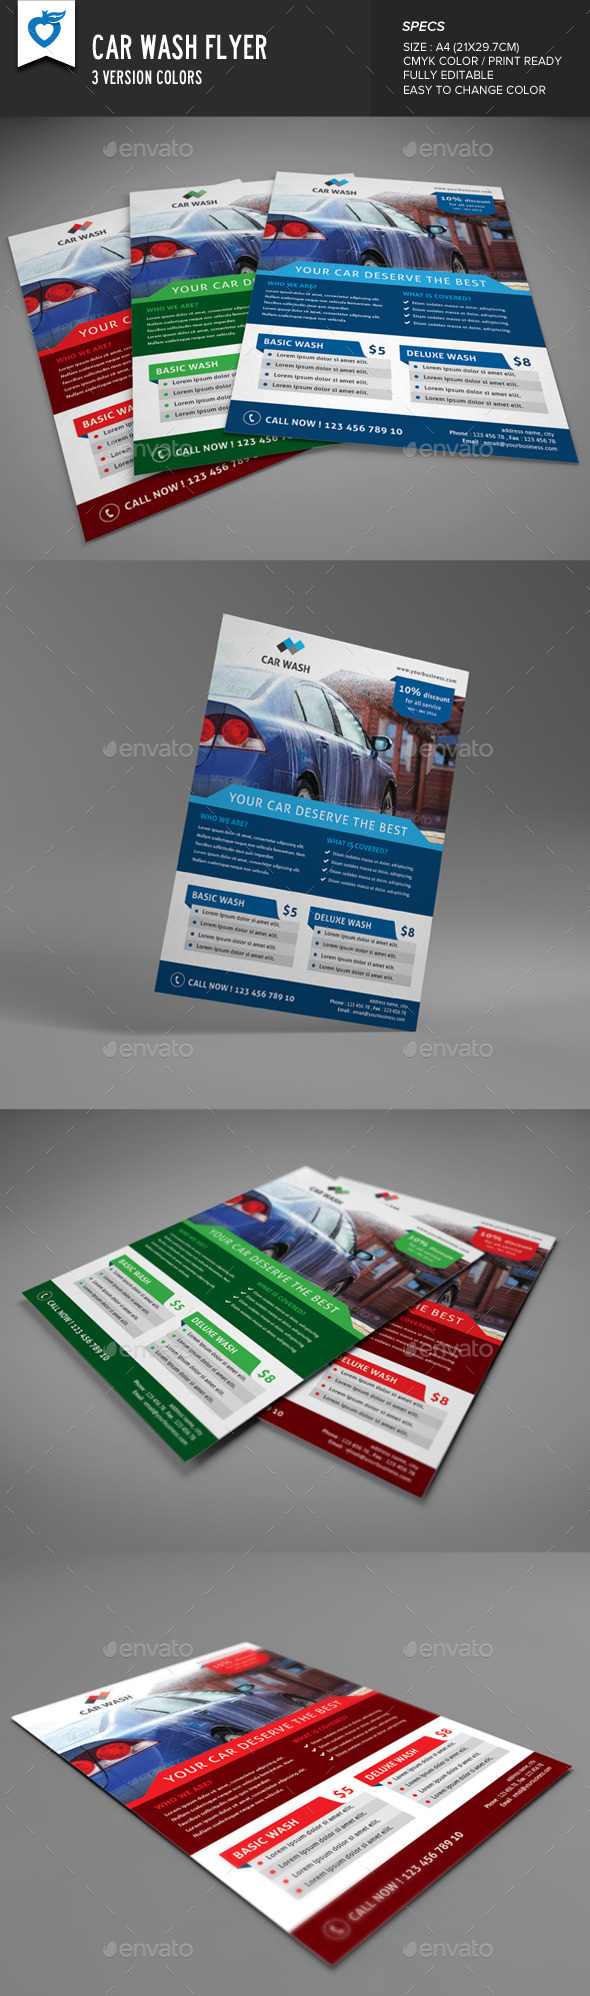 Car Wash Flyer - Commerce Flyers